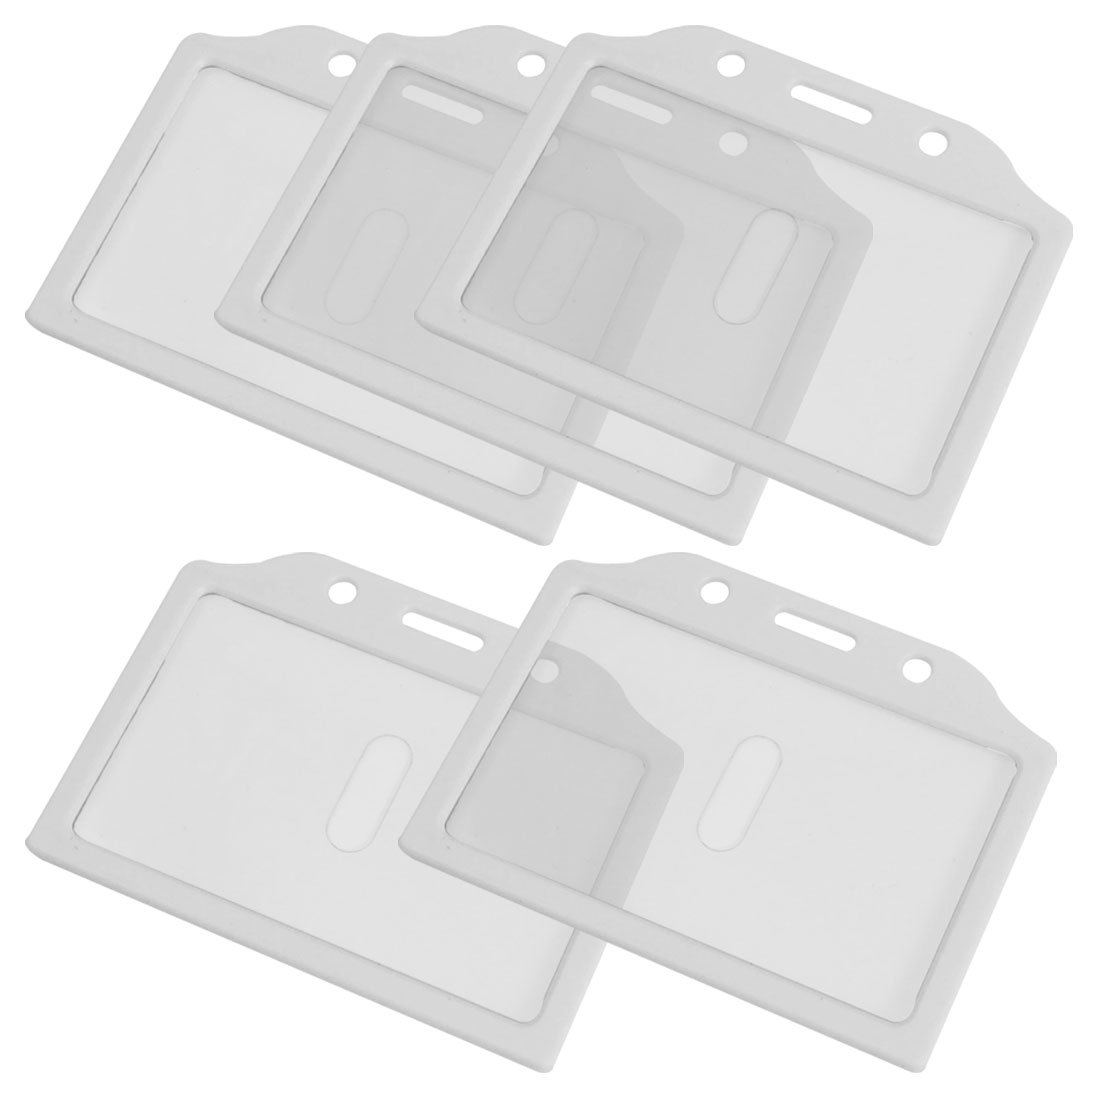 compare prices on clear business card holder online shopping